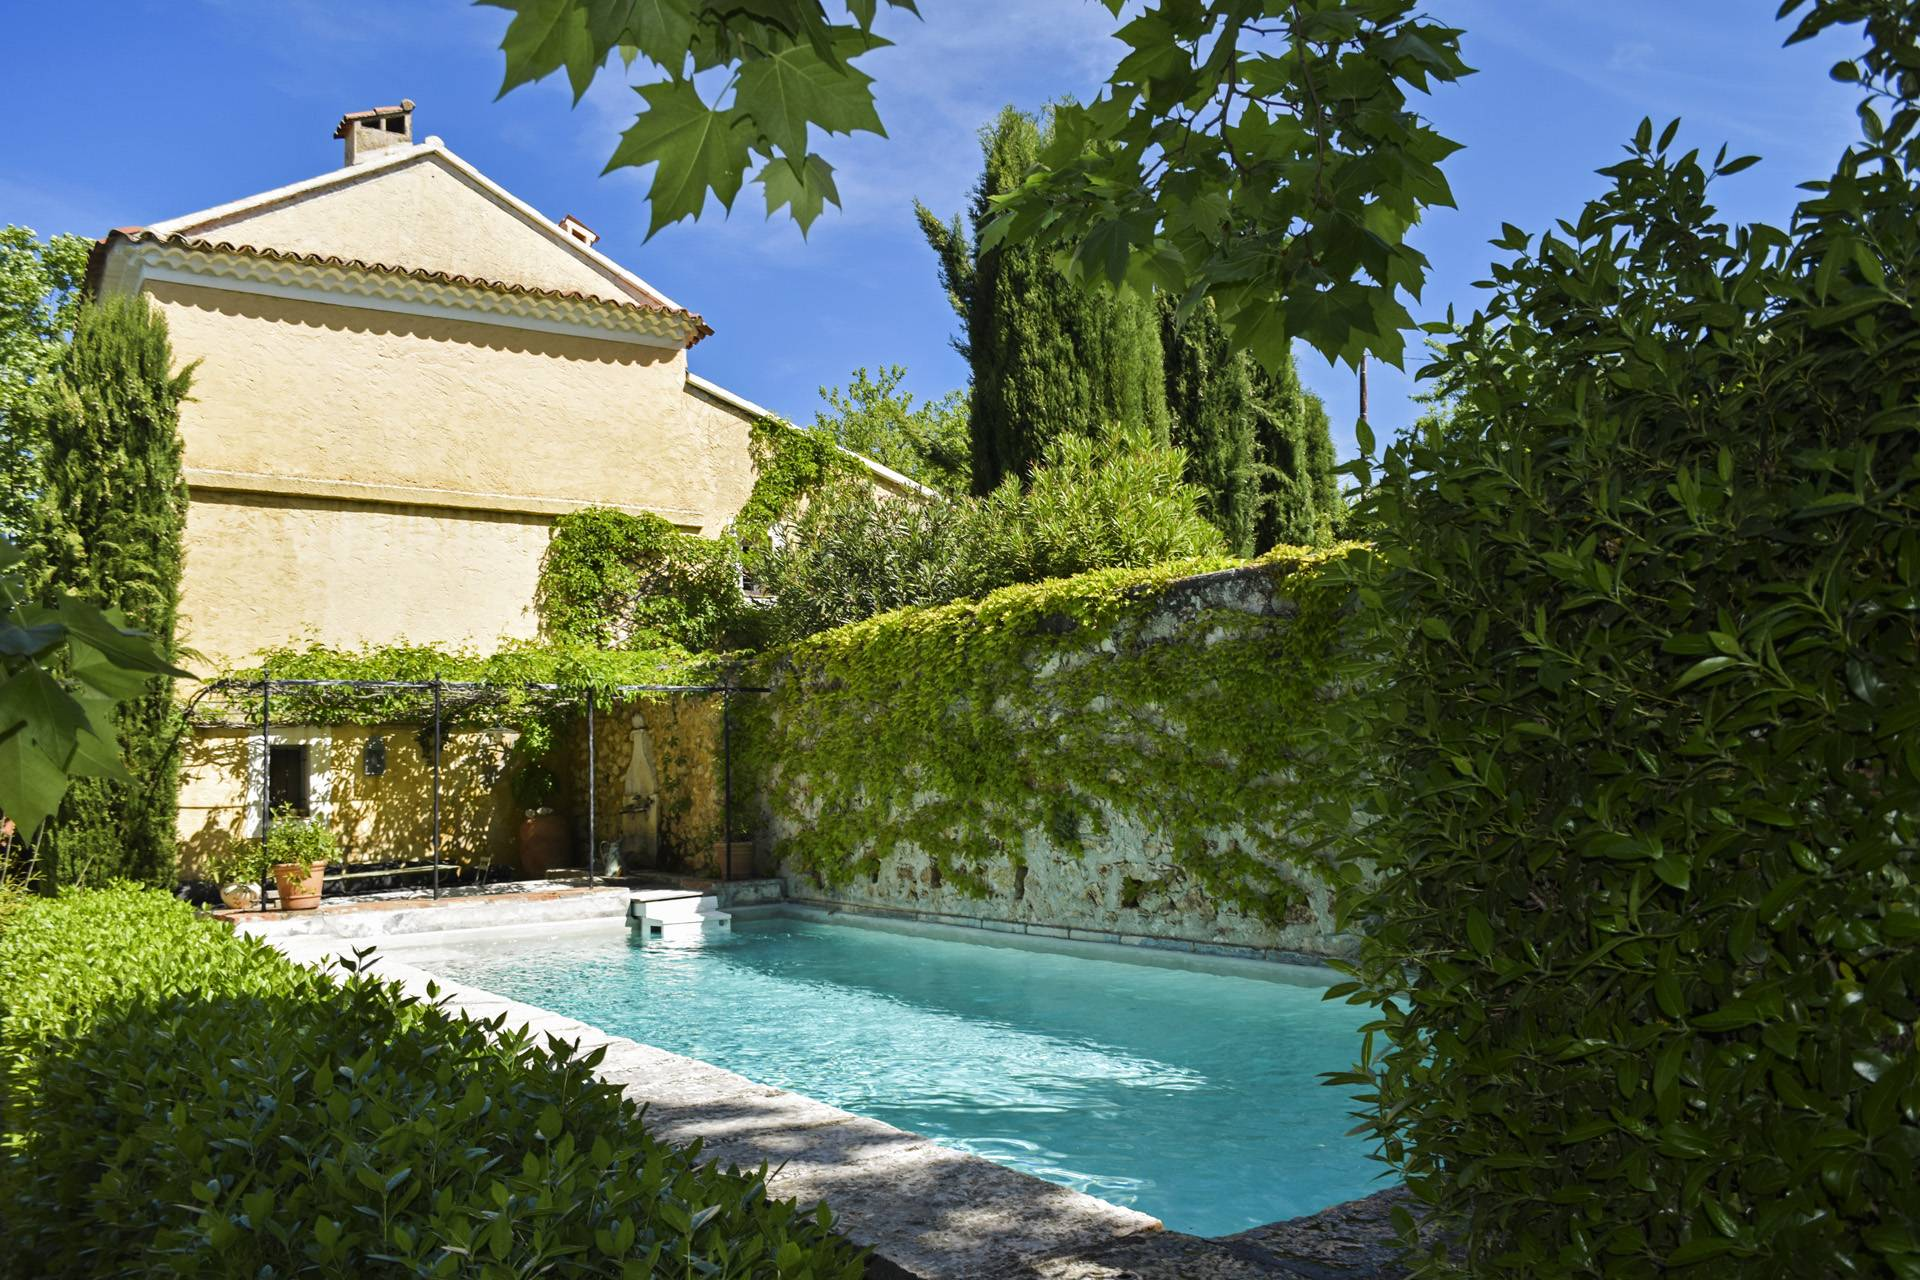 old bassin swimming pool renovated country house on 8 ha, swimming pool, caretaker's house, aups var, provence